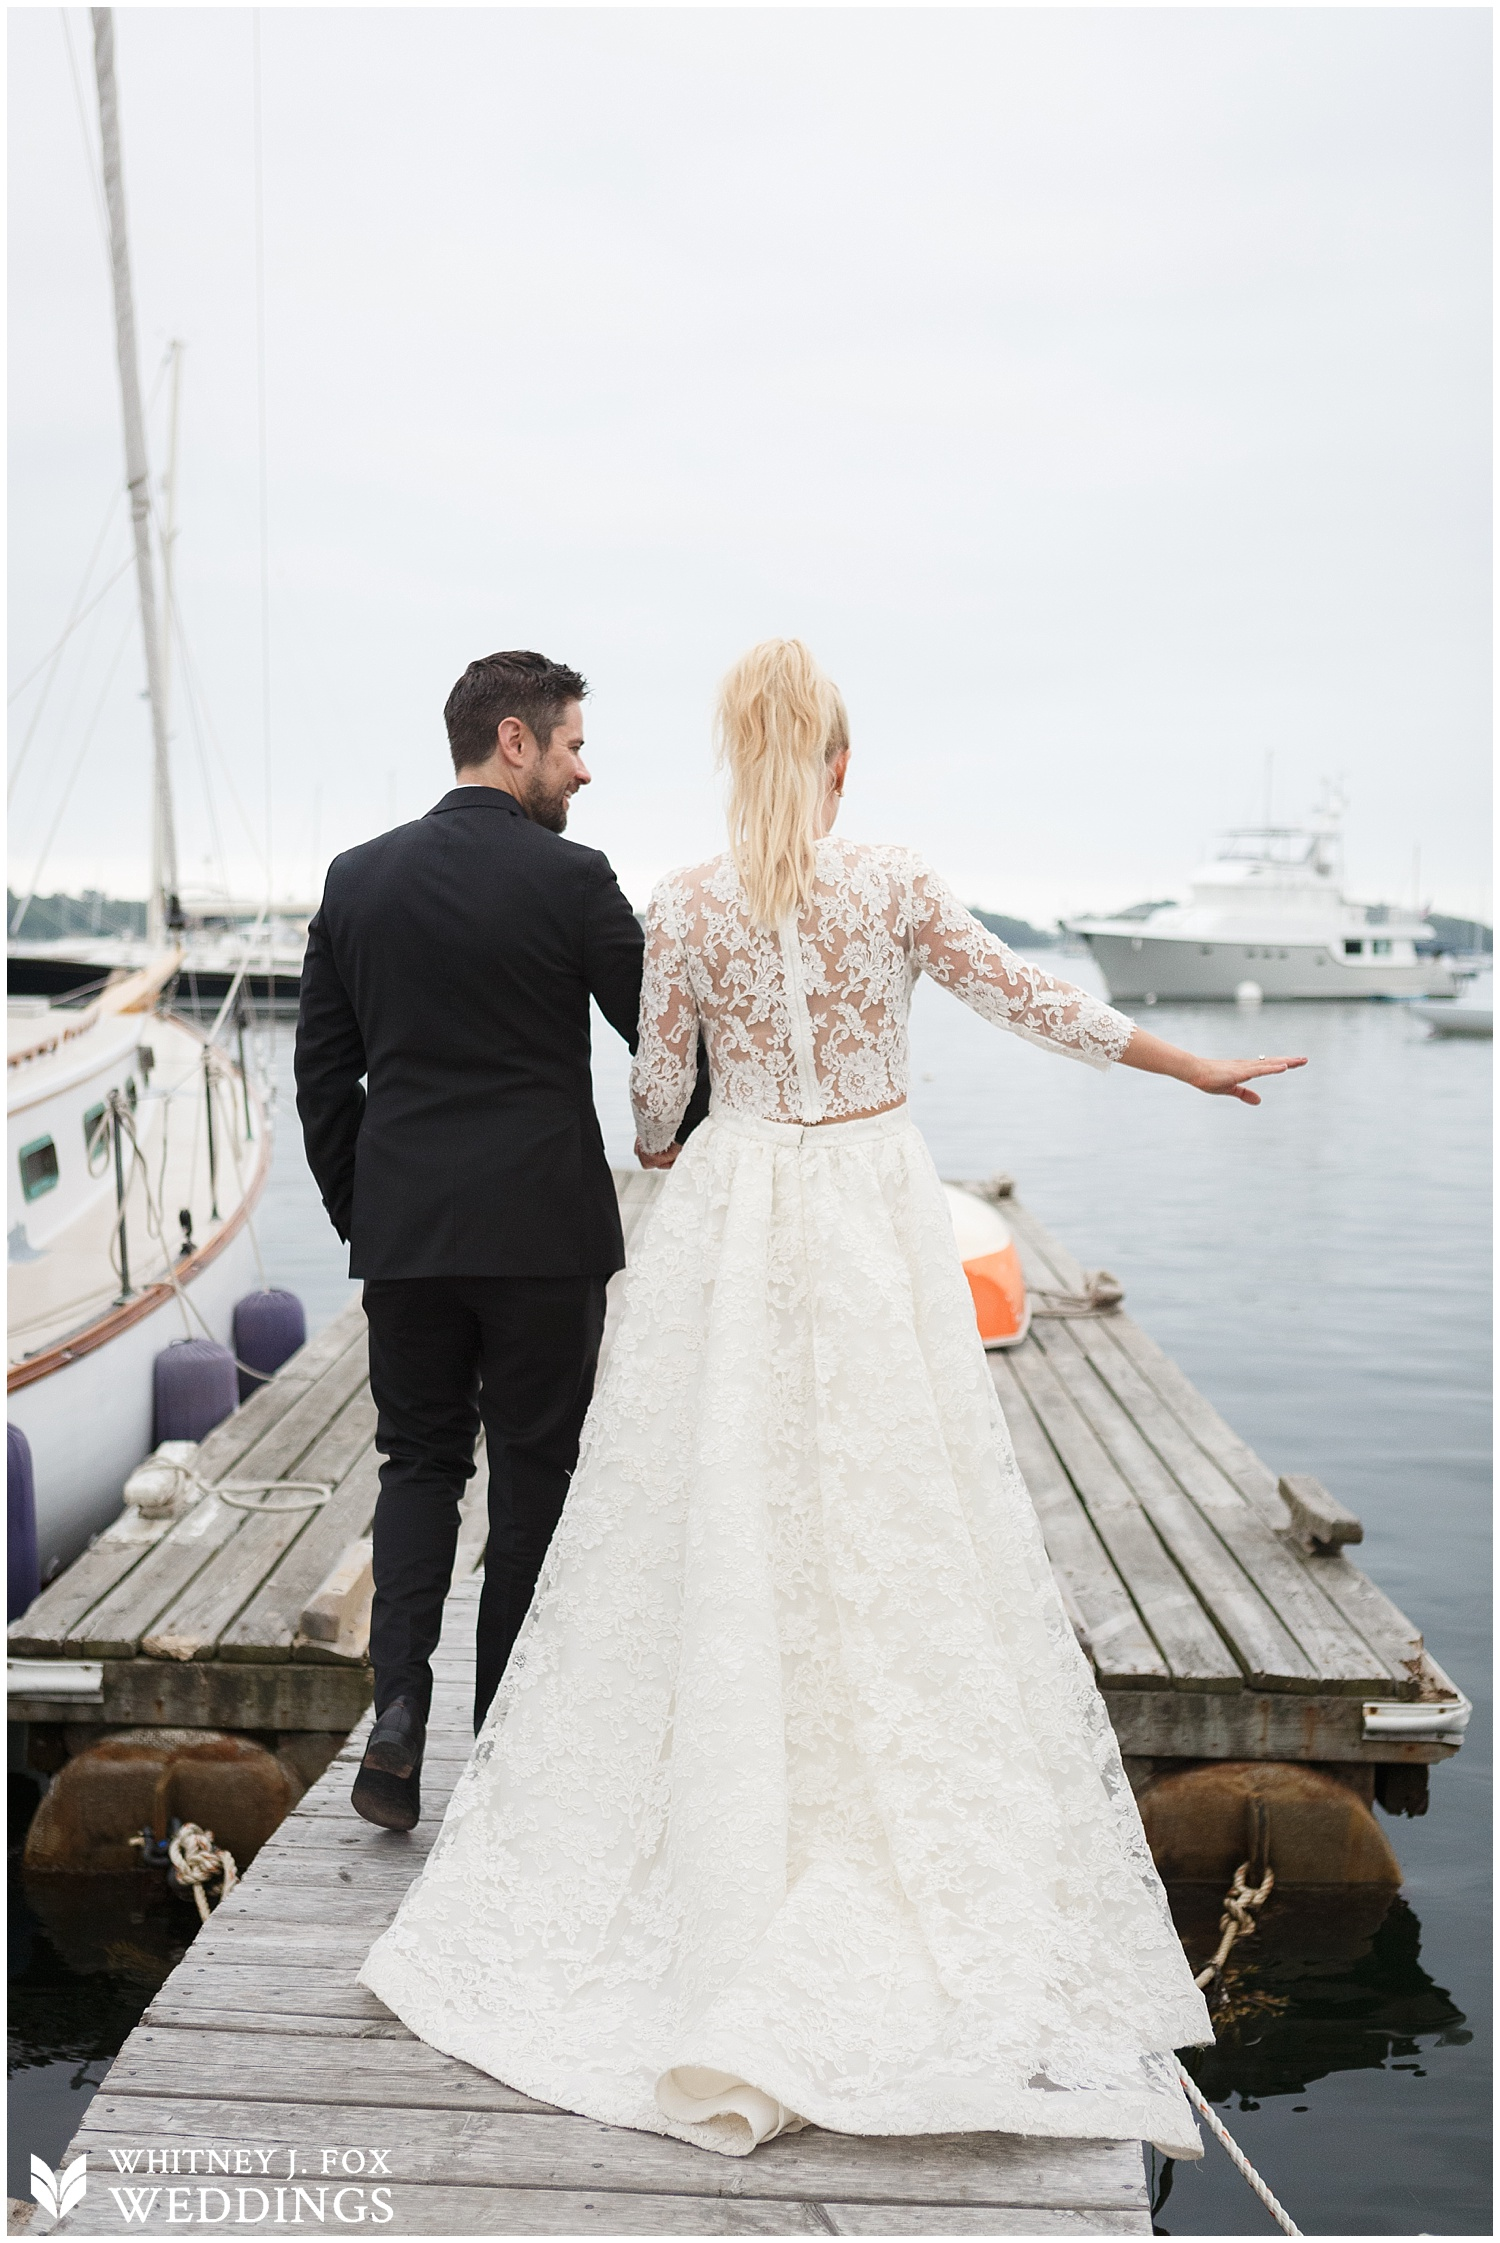 formal_seaside_summer_wedding_dockside_grill_falmouth_maine_photographer_whitney_j_fox_weddings_81.JPG